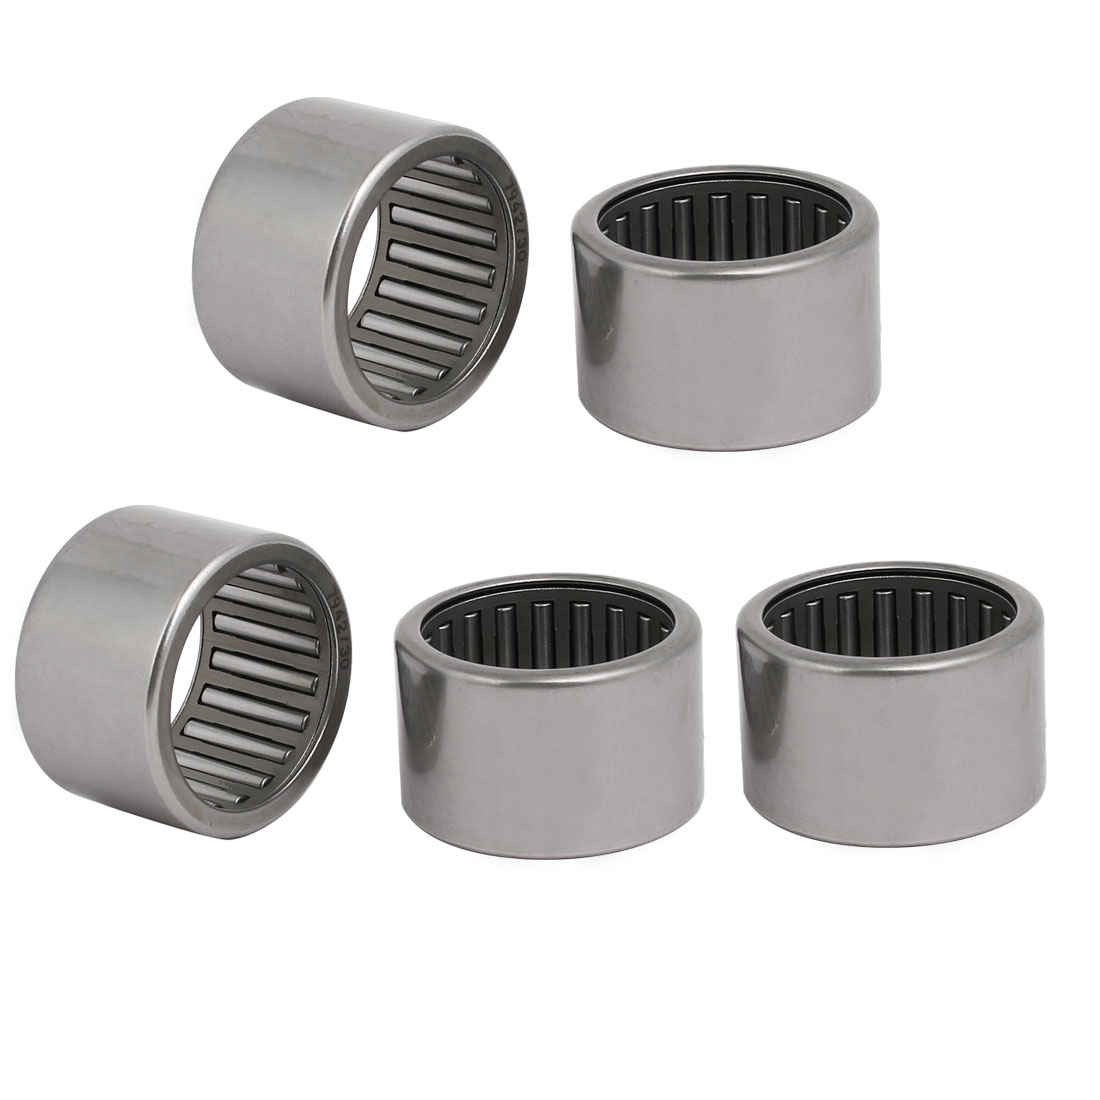 38mmx30mmx24mm Drawn Cup Open End Needle Roller Bearing Silver Tone 5pcs